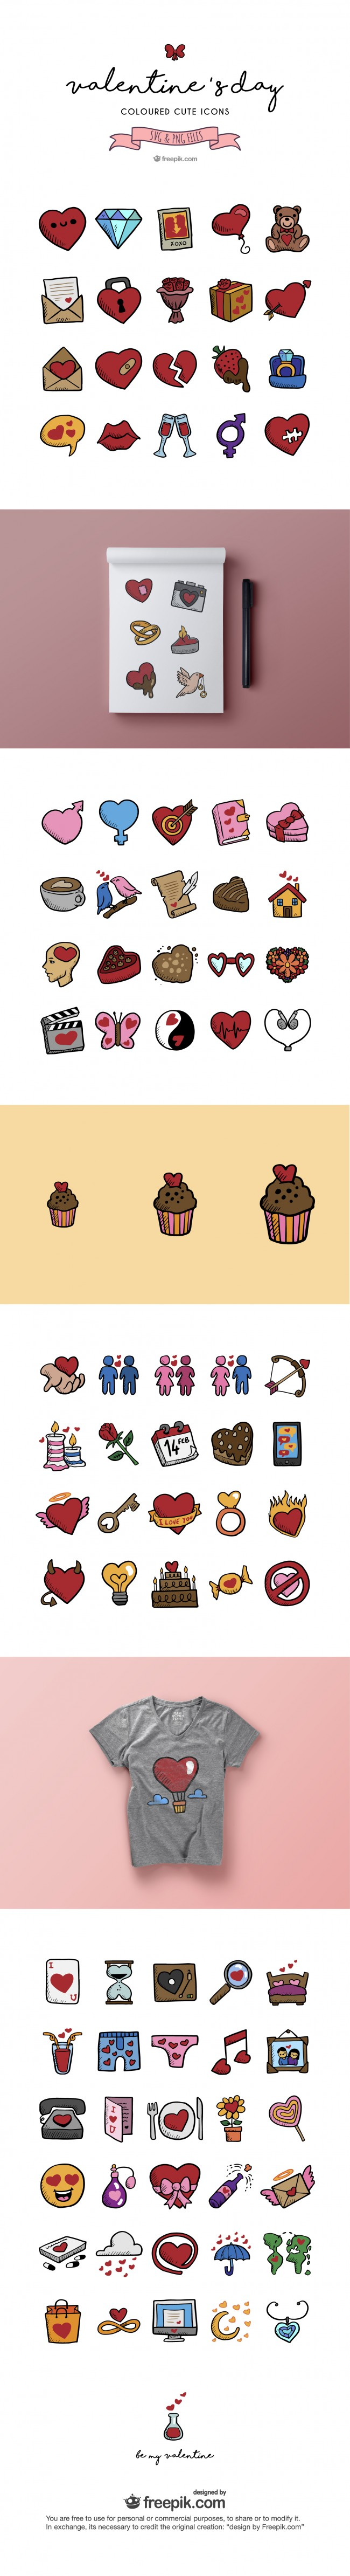 Hand drawn-Valentine's day icons-01